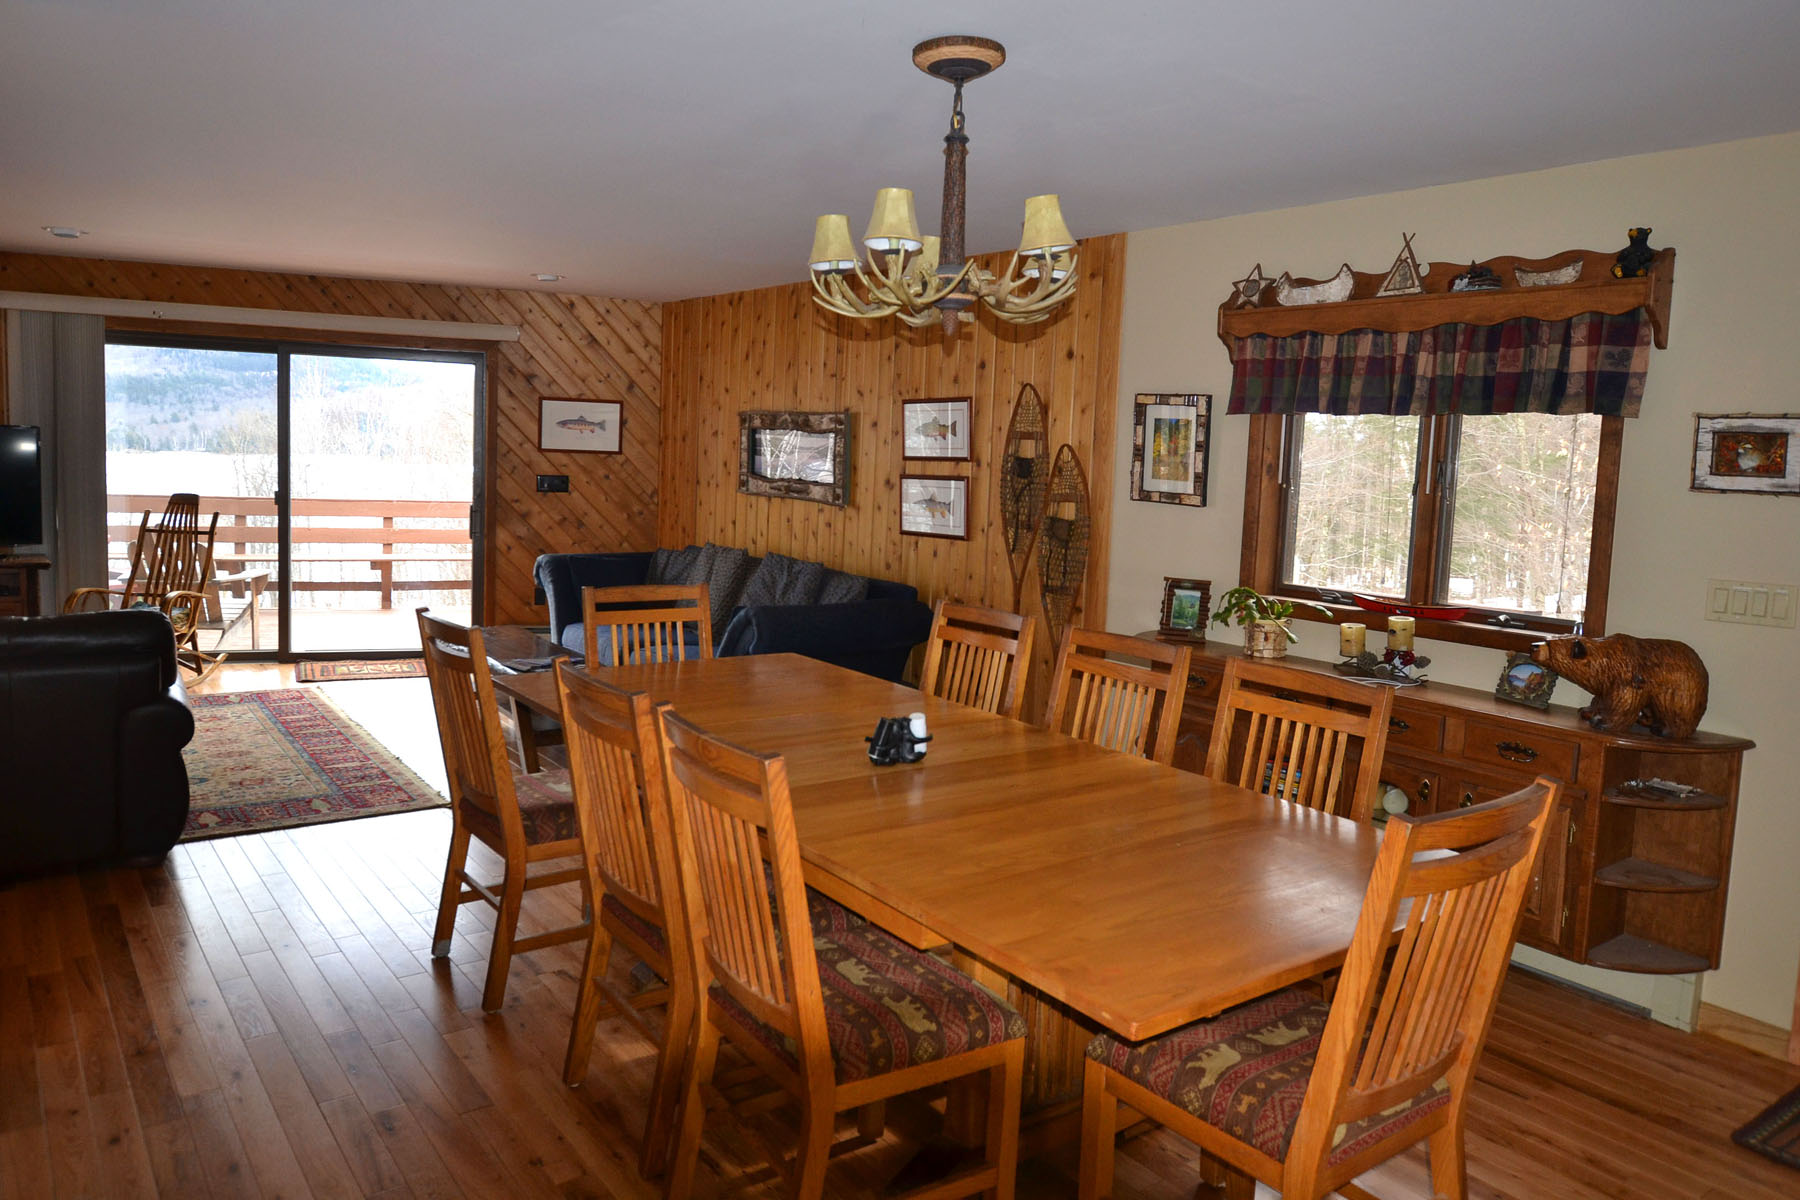 Additional photo for property listing at Indian Lake Chalet 5438 NYS Route 30 Indian Lake, Nueva York 12842 Estados Unidos